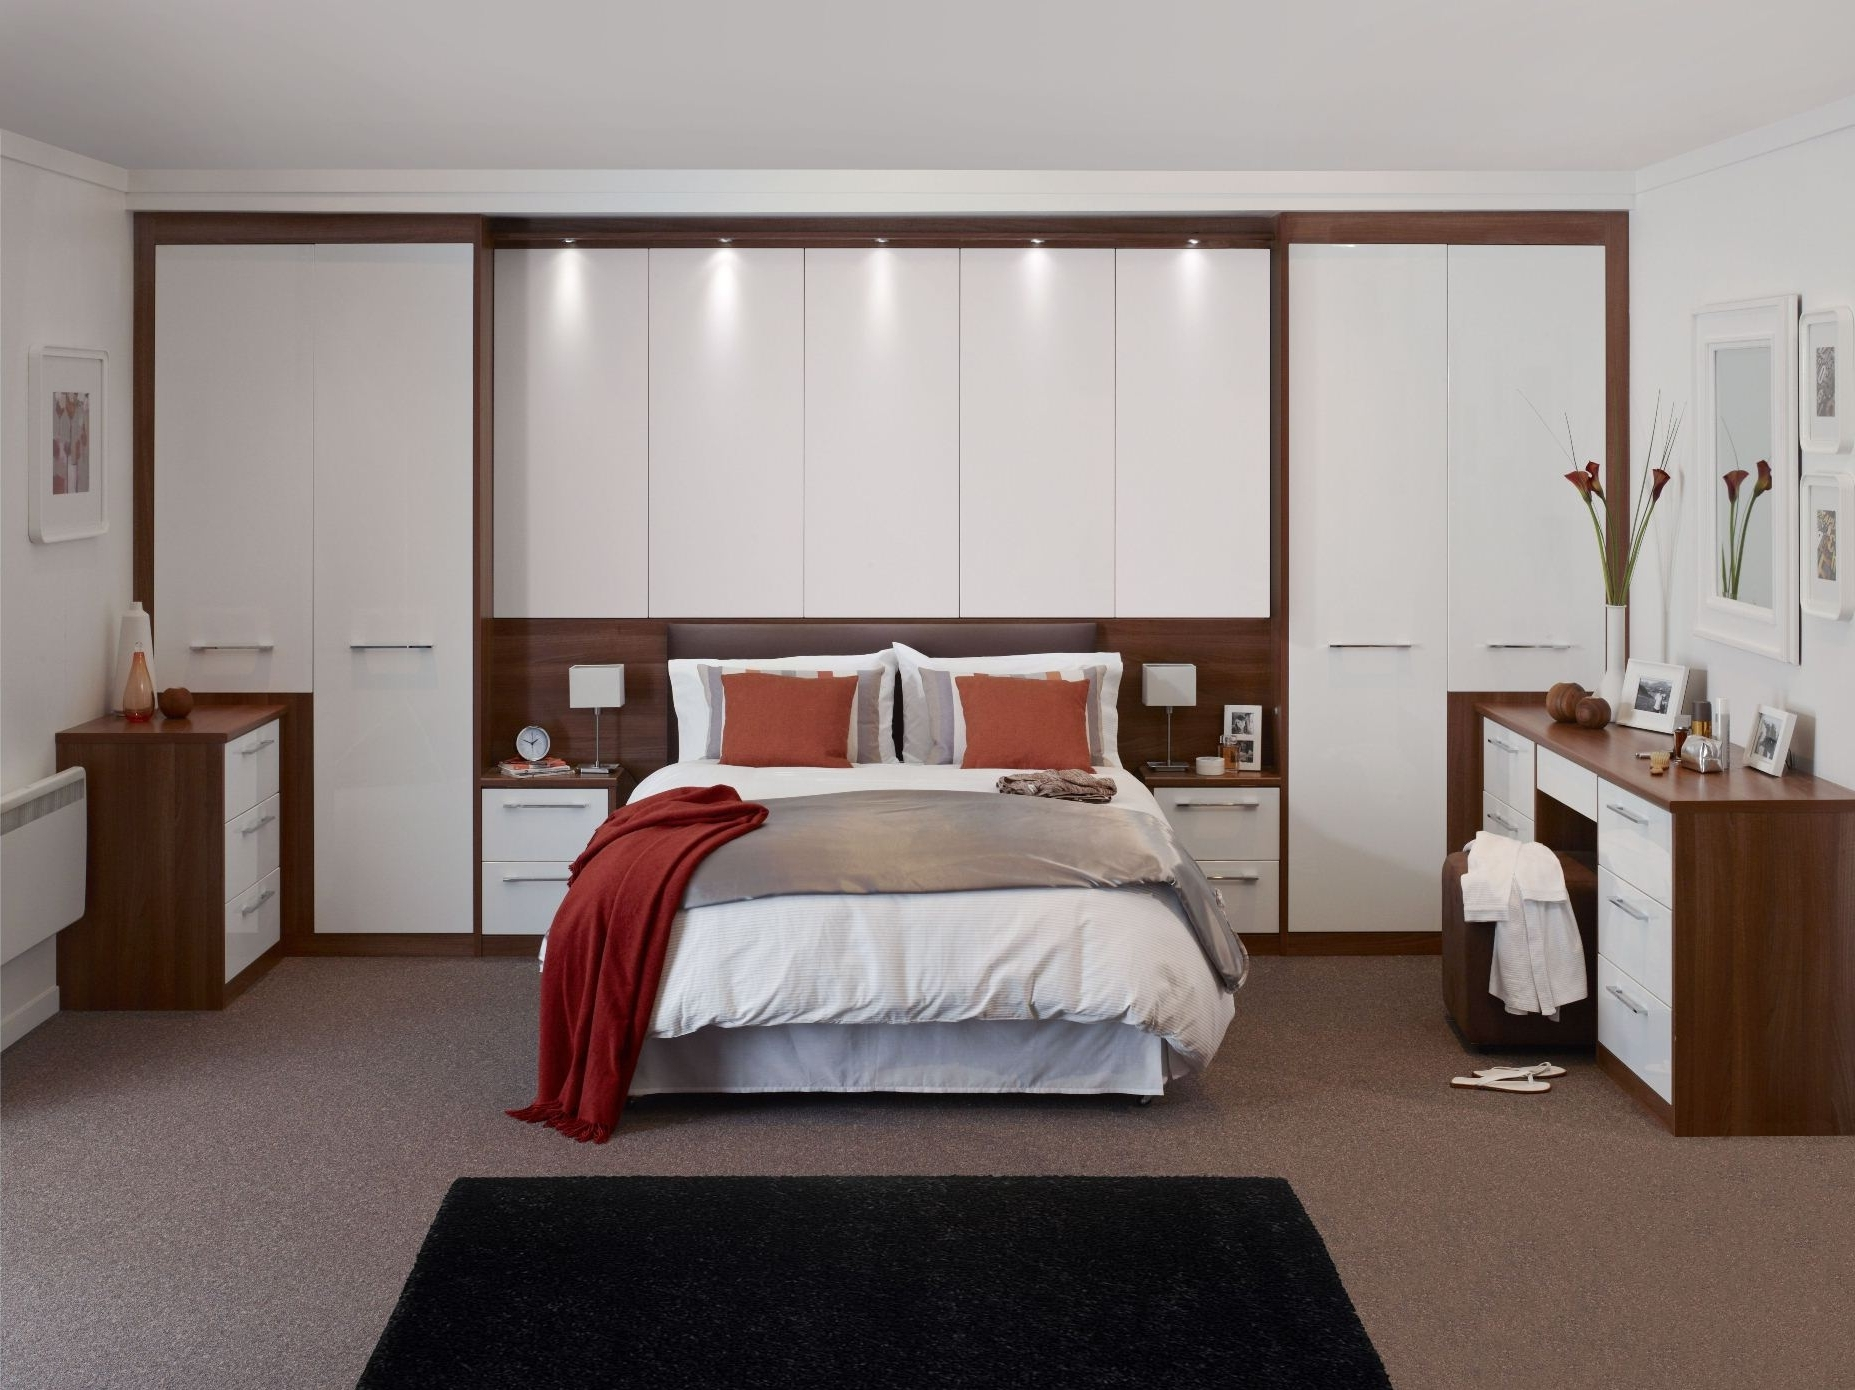 Well Known Over Bed Wardrobes Sets Within 22 Fitted Bedroom Wardrobes Design To Create A Wow Moment (View 15 of 15)